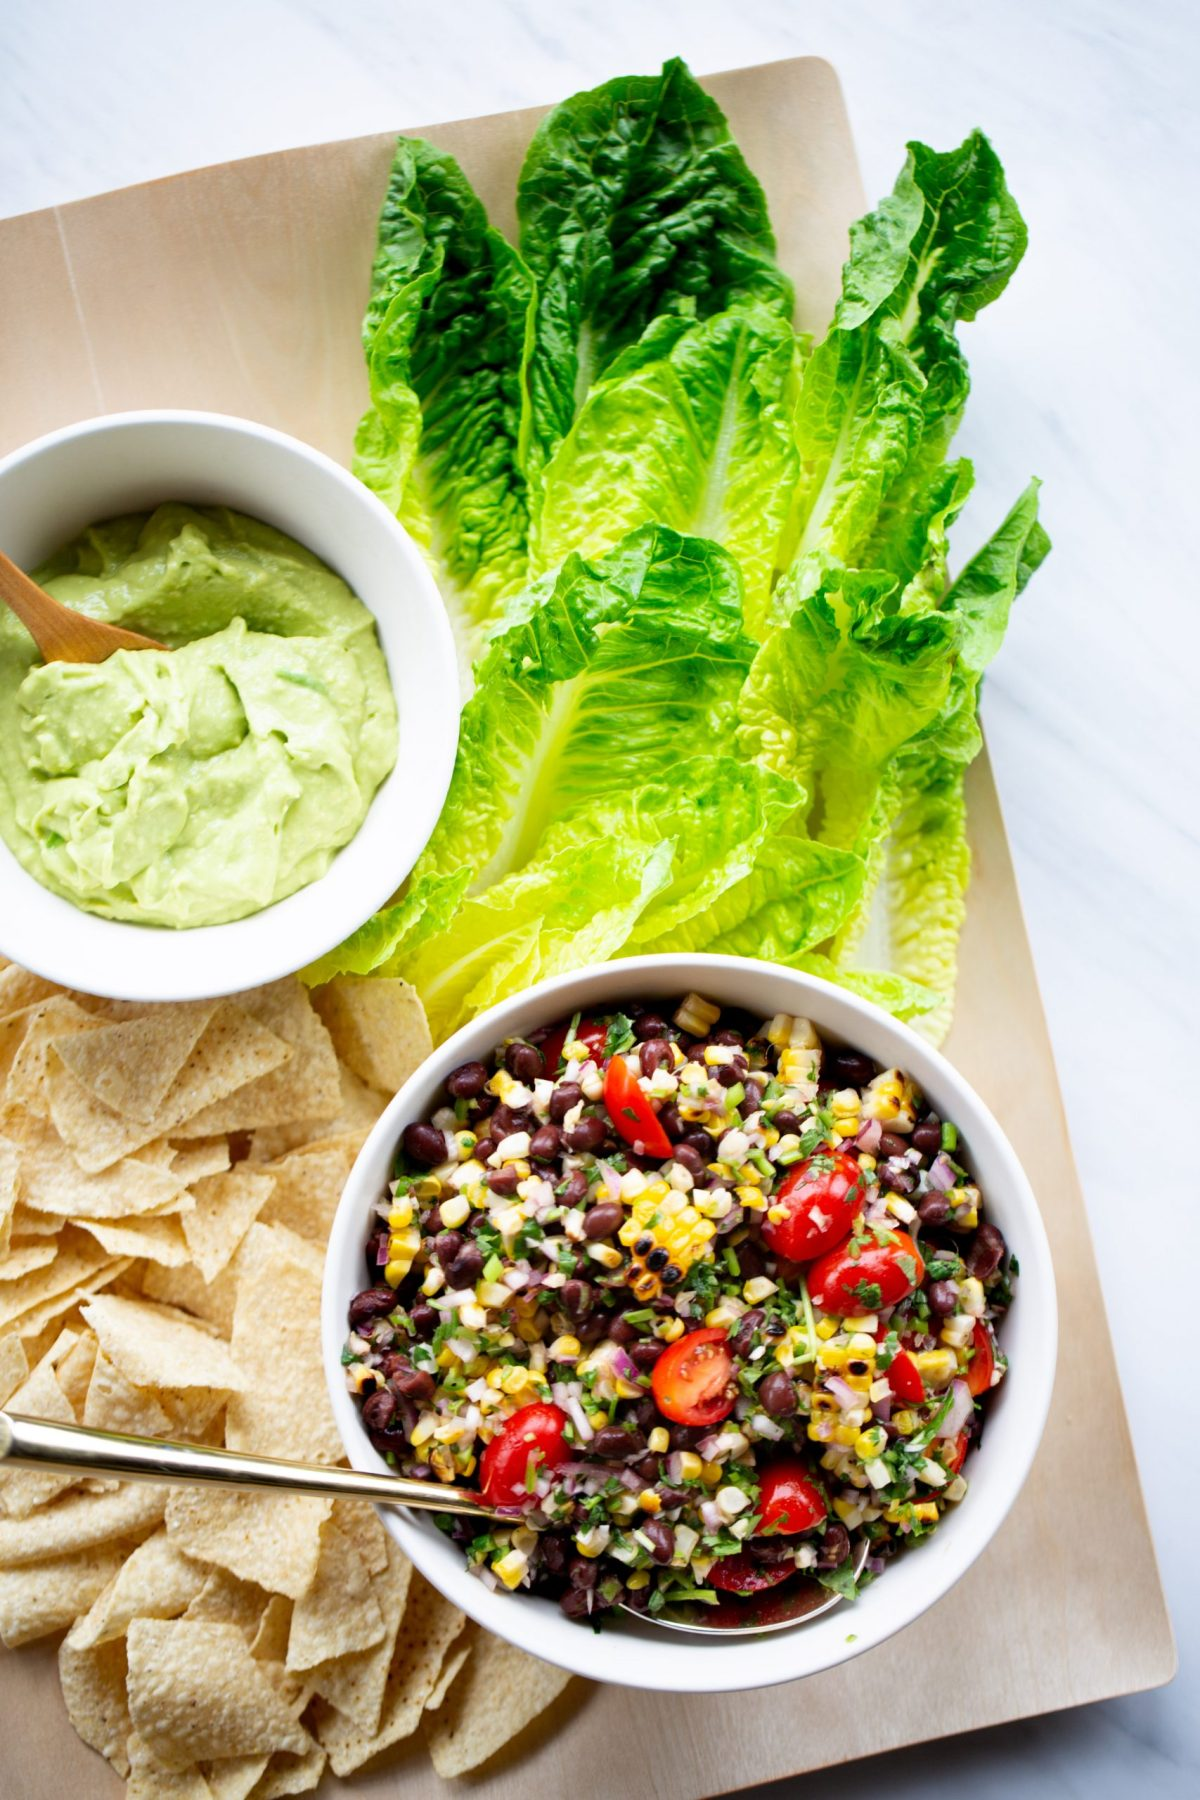 PICO DE GALLO WITH BLACK BEANS, ROASTED CORN & AVOCADO CREMA